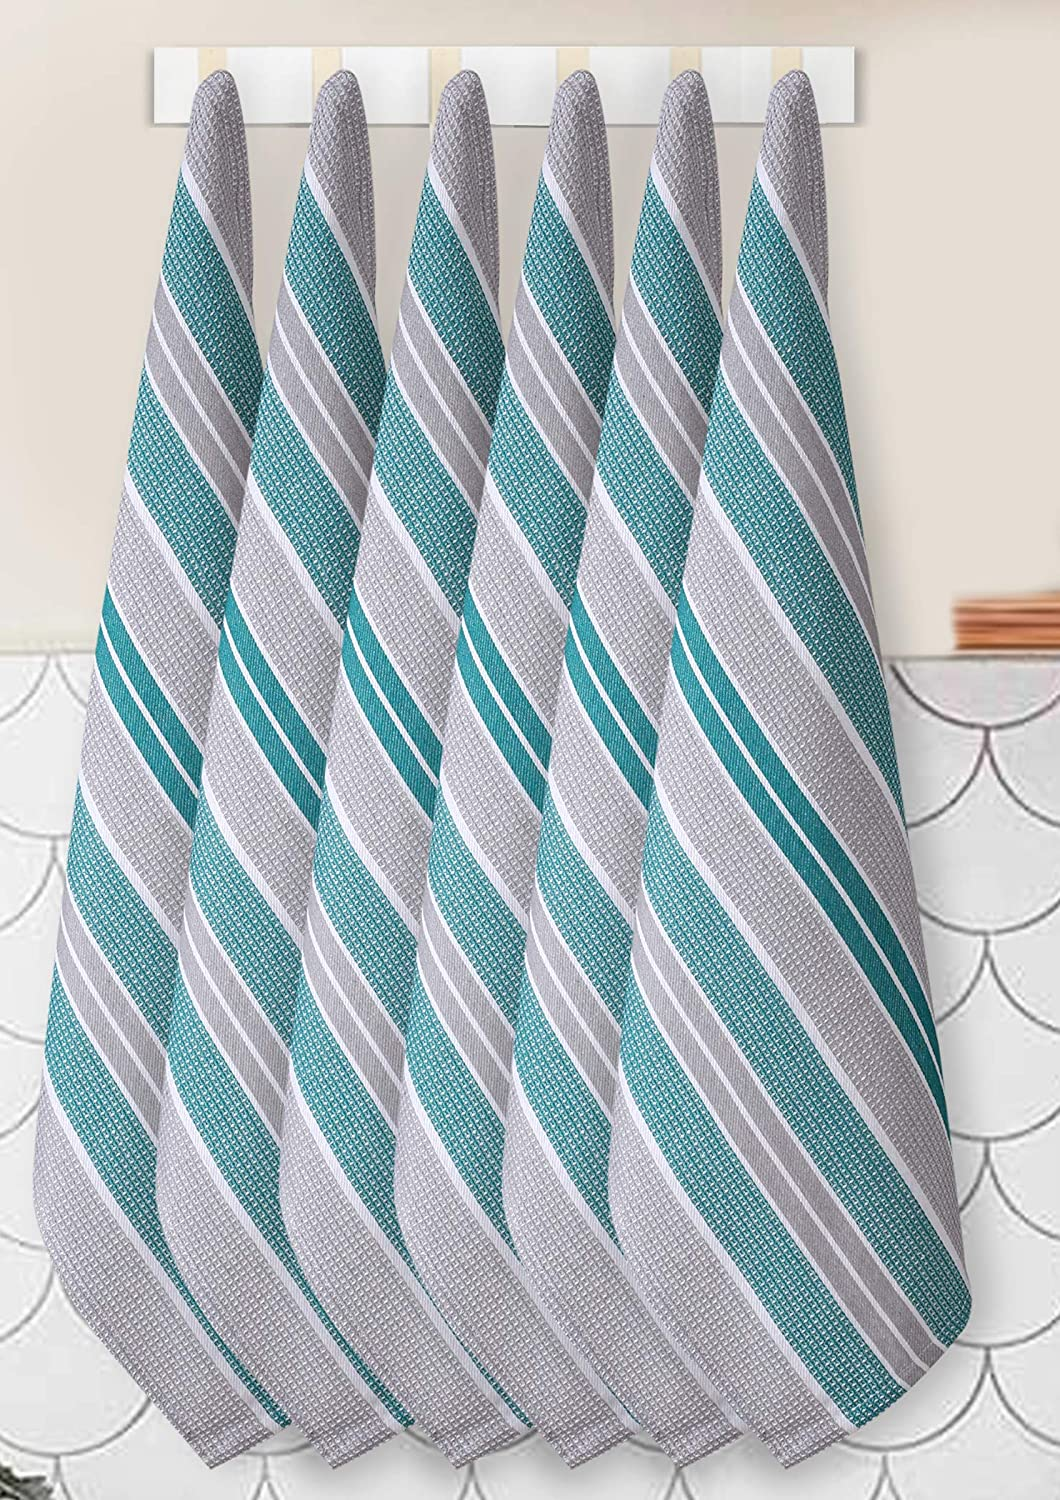 6 Pack 100% Cotton Farmhouse Vintage Dish Towels Tea Towels Highly Absorbent Quick Dry Professional Grade with Hanging Loop - Honeycomb - 18x28 Inch - Teal Grey